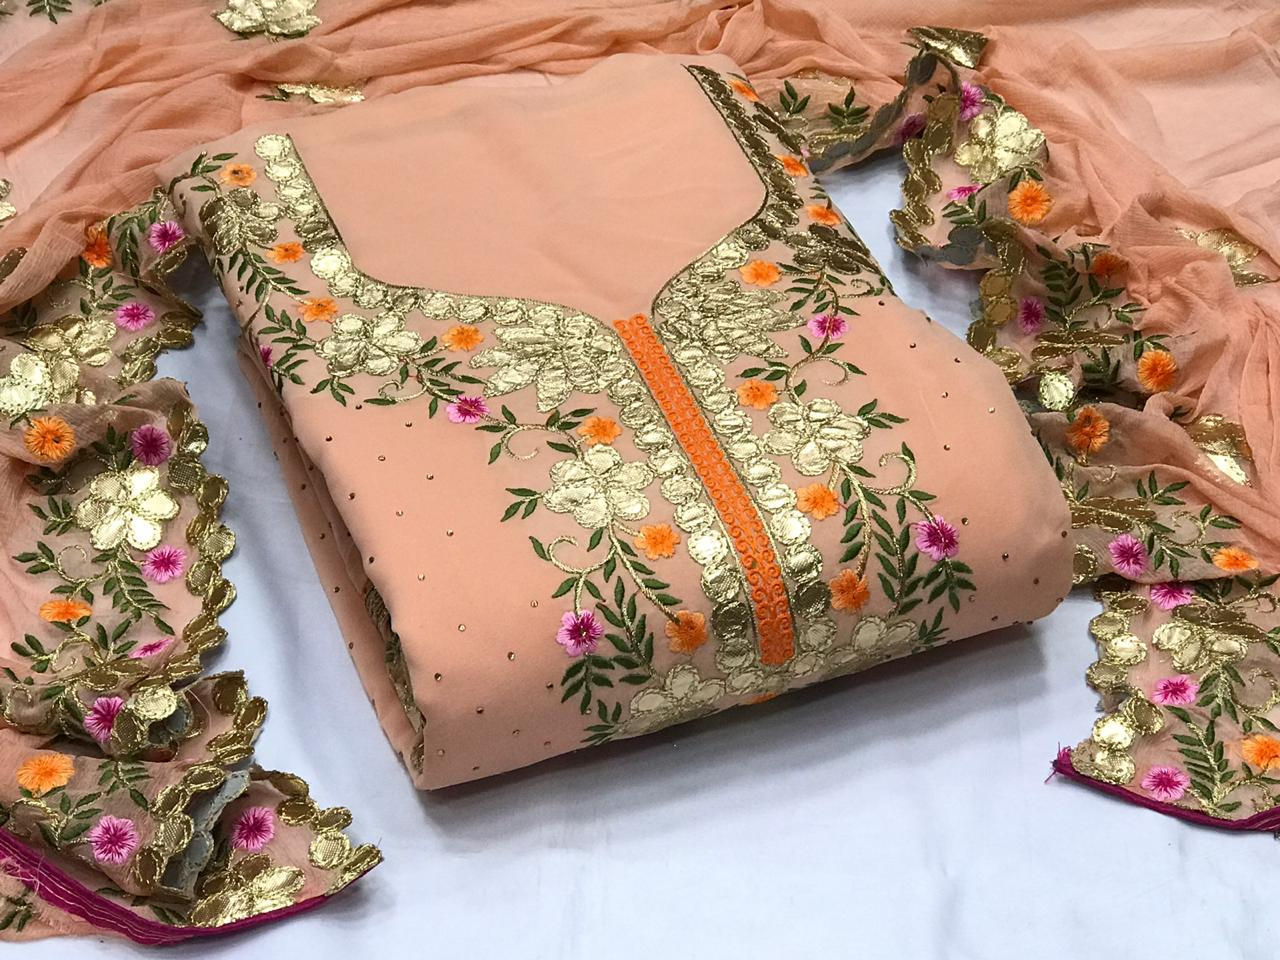 Thankar  Heavy Santoon Fabric with Embroidery Work Dress Material Catalog at Wholwsale rate